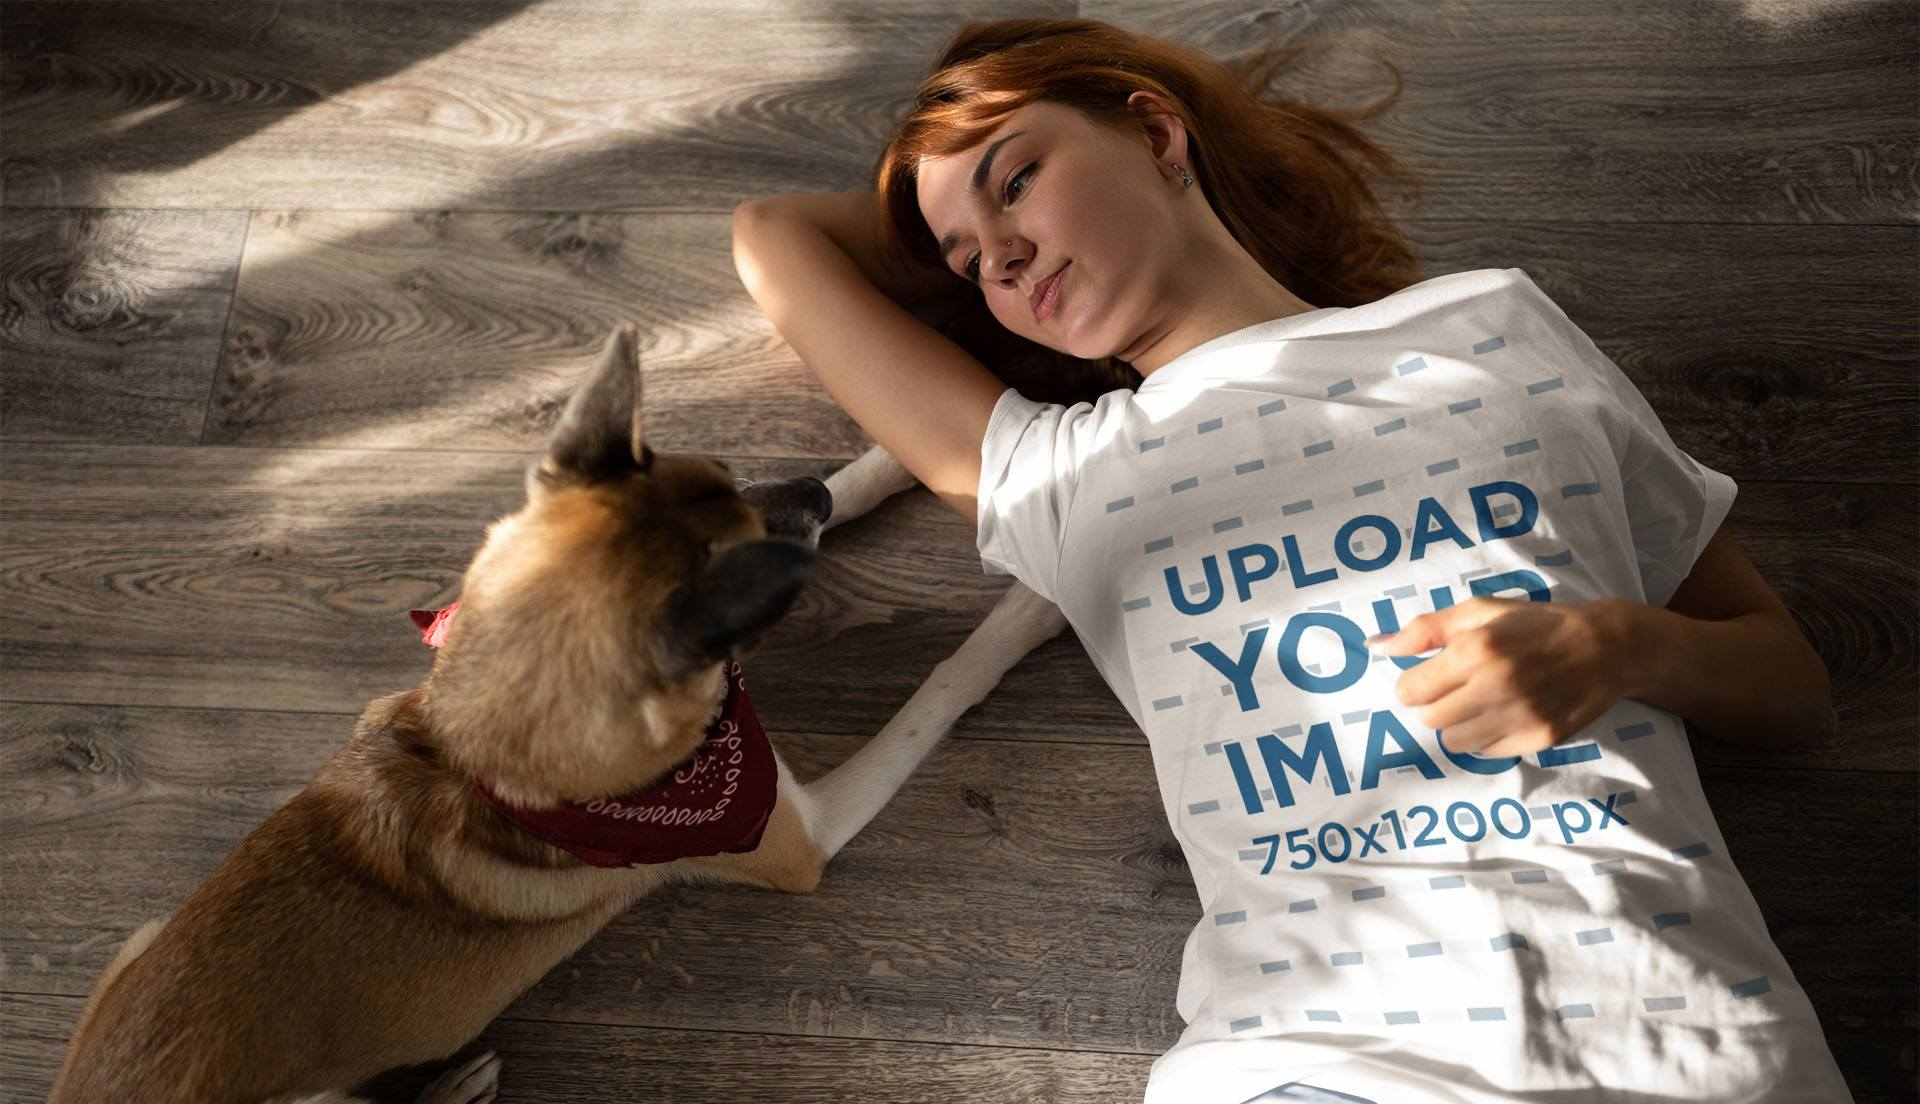 T-Shirt Mockup of a Woman Chilling with Her Dog 35191-rel2